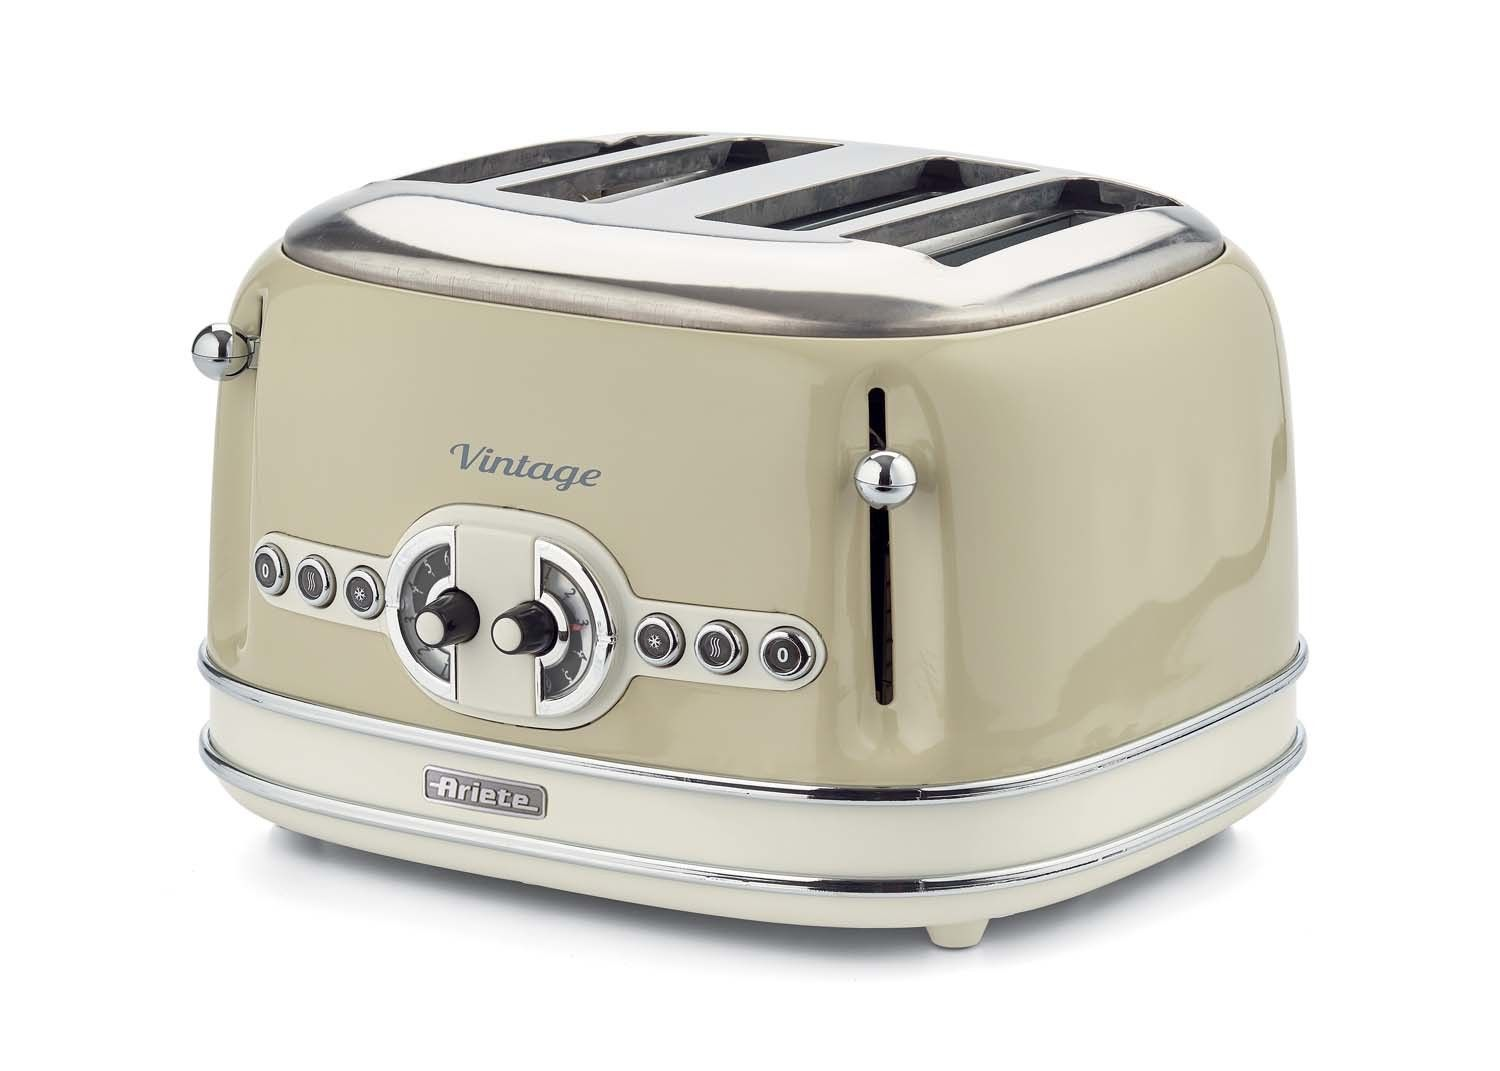 Buy Ariete Vintage 156 Retro 4 Slice Toaster Beige At Bestbuycyprus Com For 95 00 With Free Delivery Utensilios Utensilios De Cocina